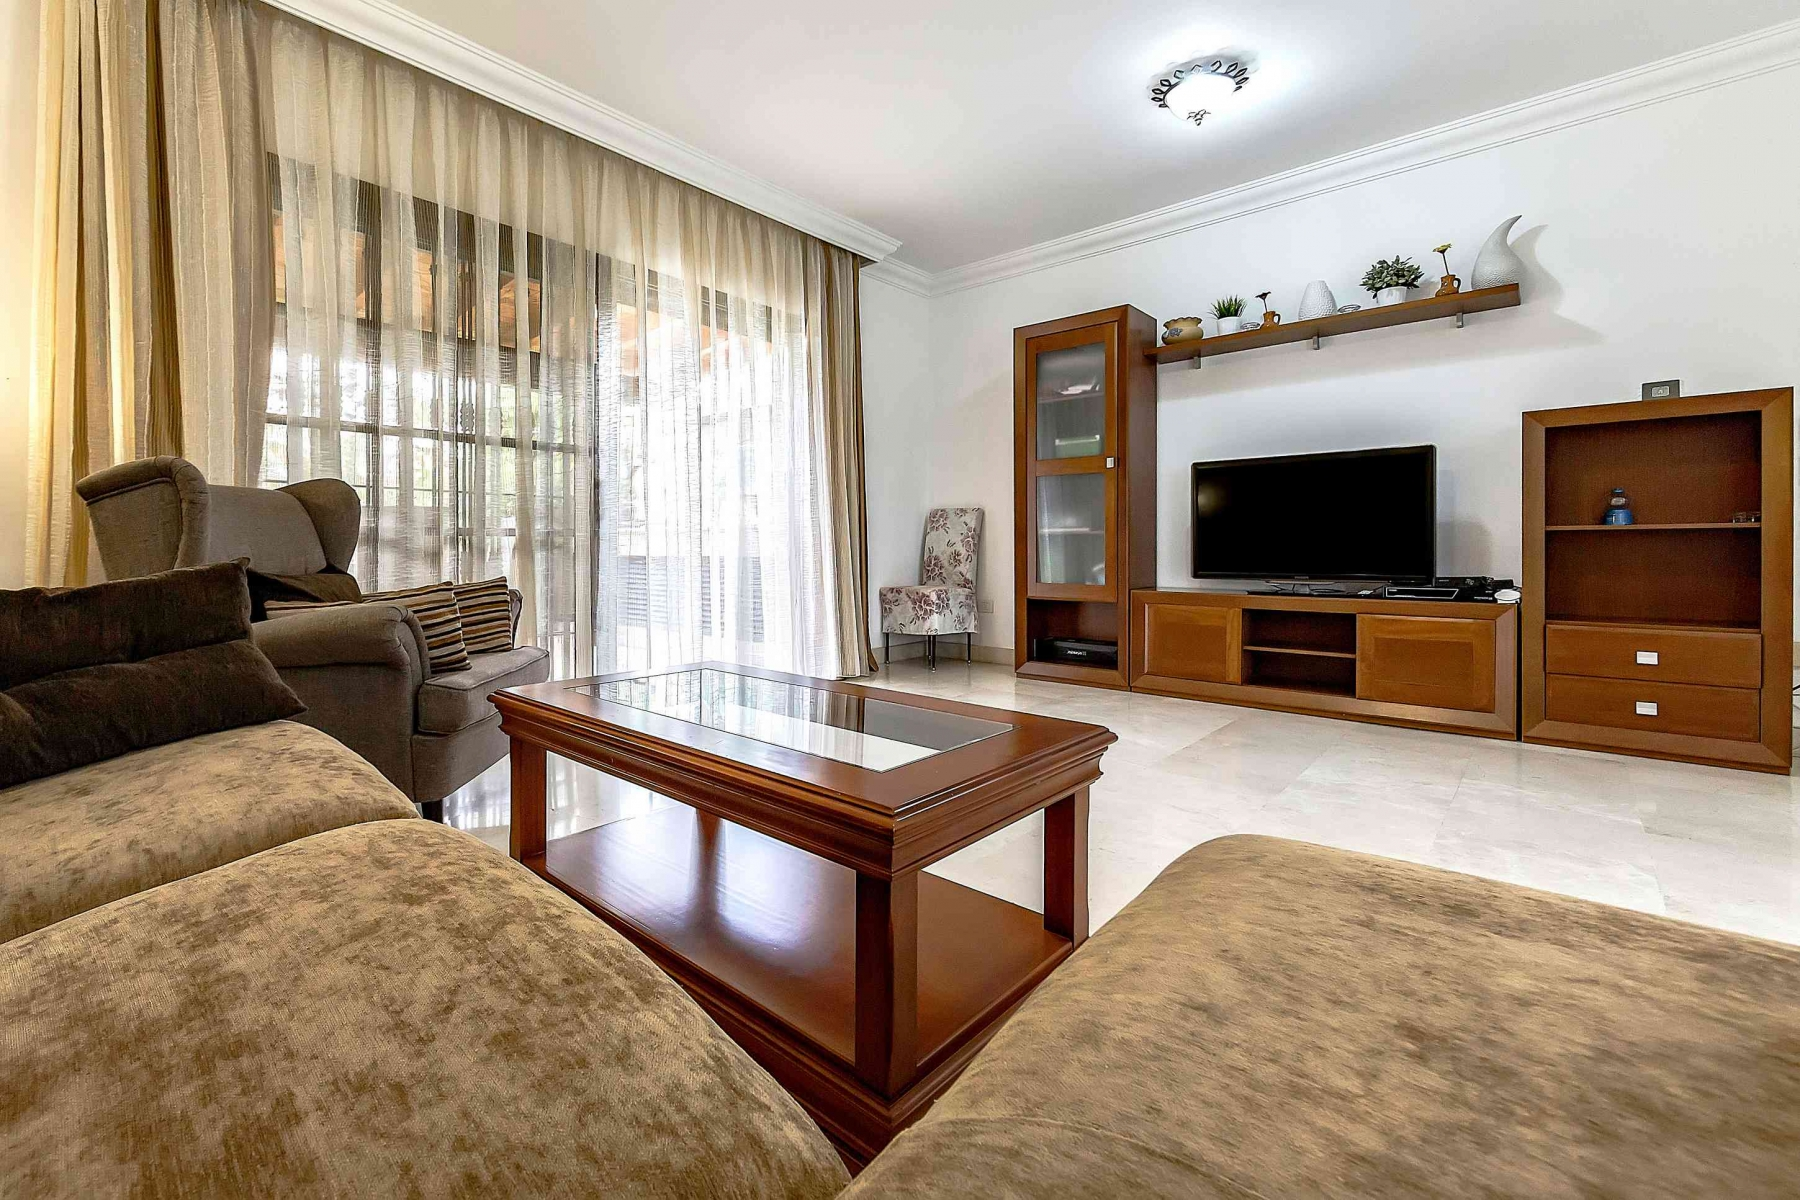 Properties for Sale in Tenerife, Canary Islands, Spain | SylkWayStar Real Estate. 3 Bedroom Townhouse LA DUQUESA. Image-24974